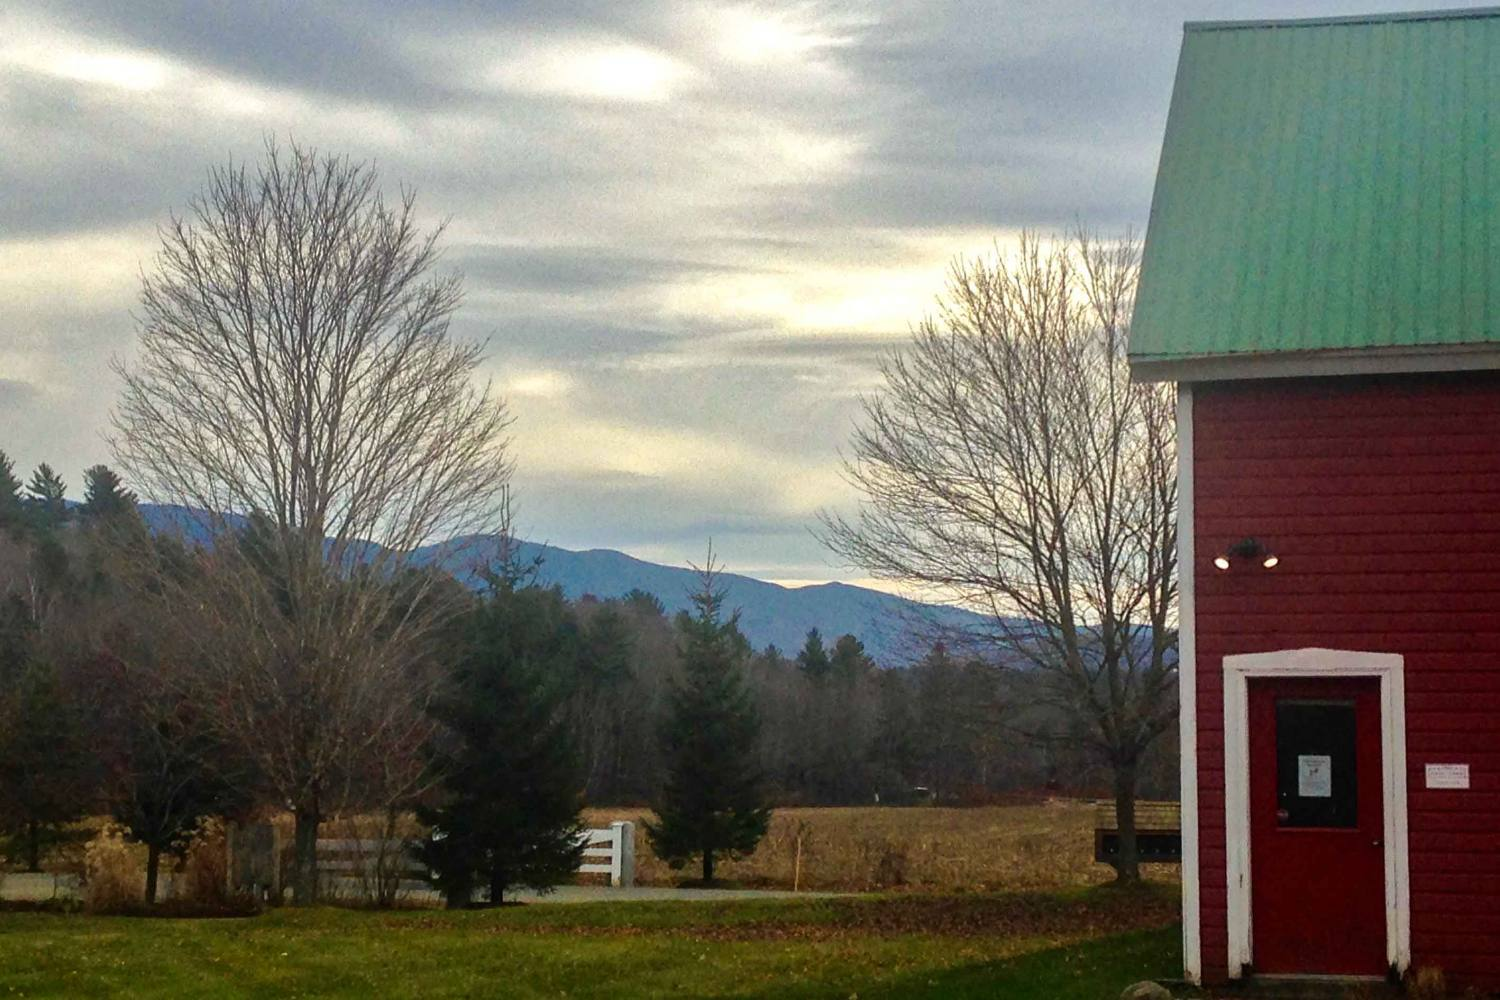 Vermont is known for its locavore movement and commitment to sustainability. The state has a vibrant local business scene, and many of its companies offer public tours. Visit a company like Ben & Jerry's, Cabot Creamery, or Snow Farm Vineyard next time you travel to Vermont.